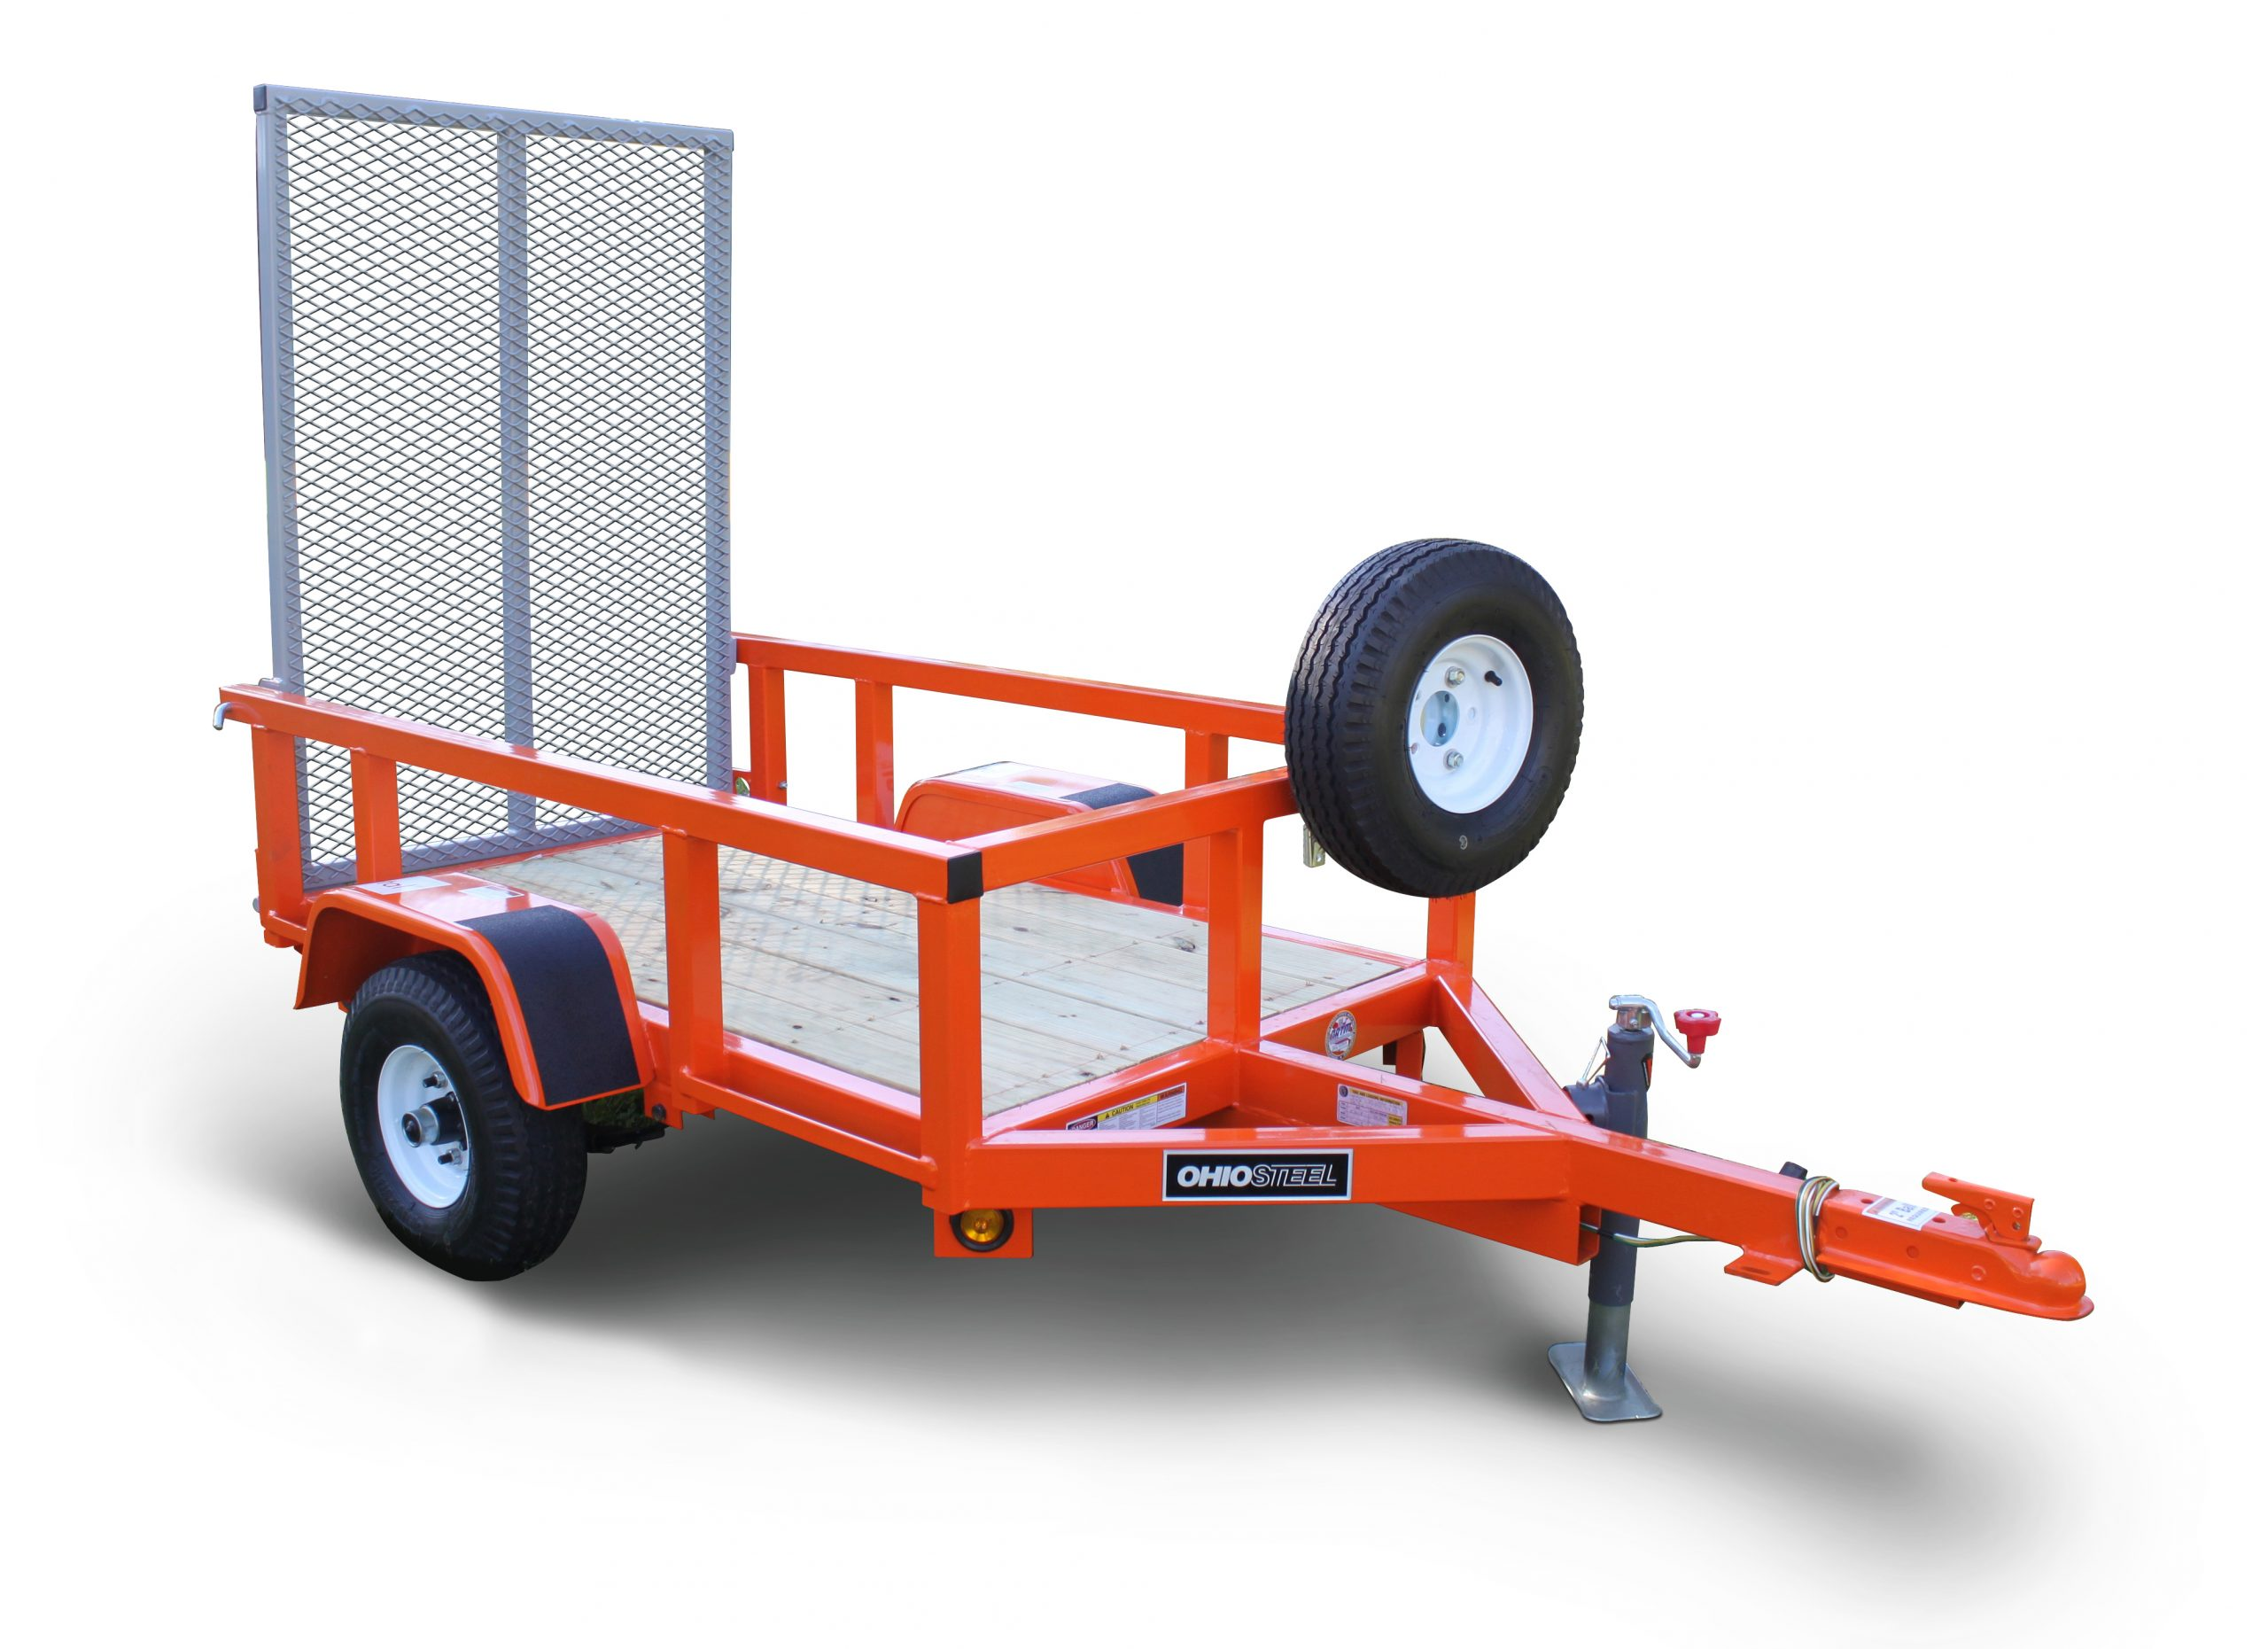 UTL3005HDR | The Home Depot Tool Rental 3 ft x 5 ft Utility Trailer